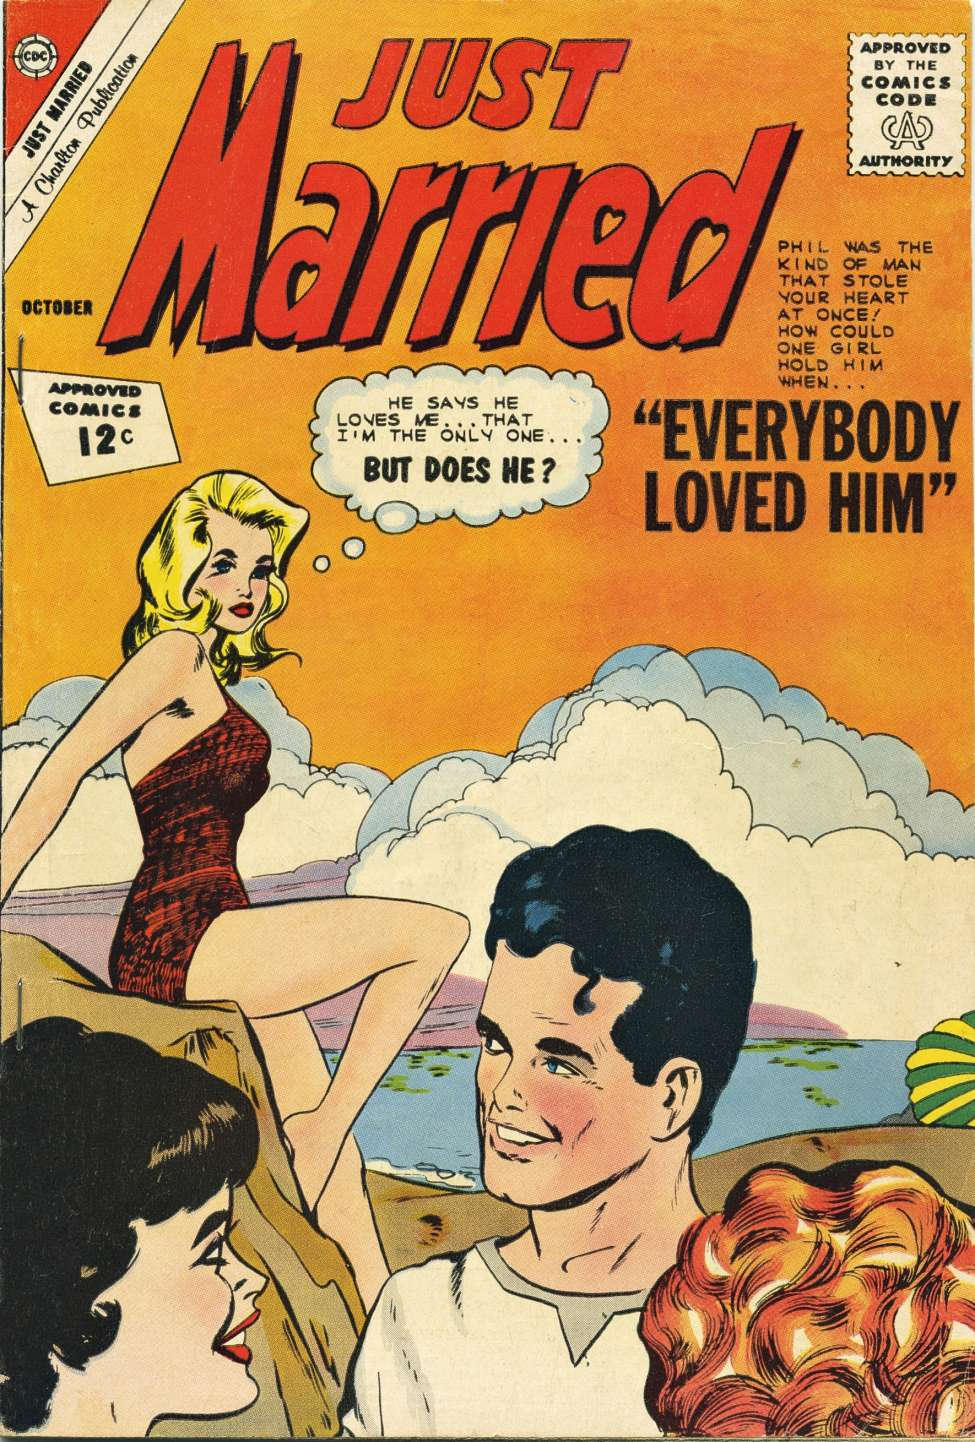 Comic Book Cover For Just Married #27